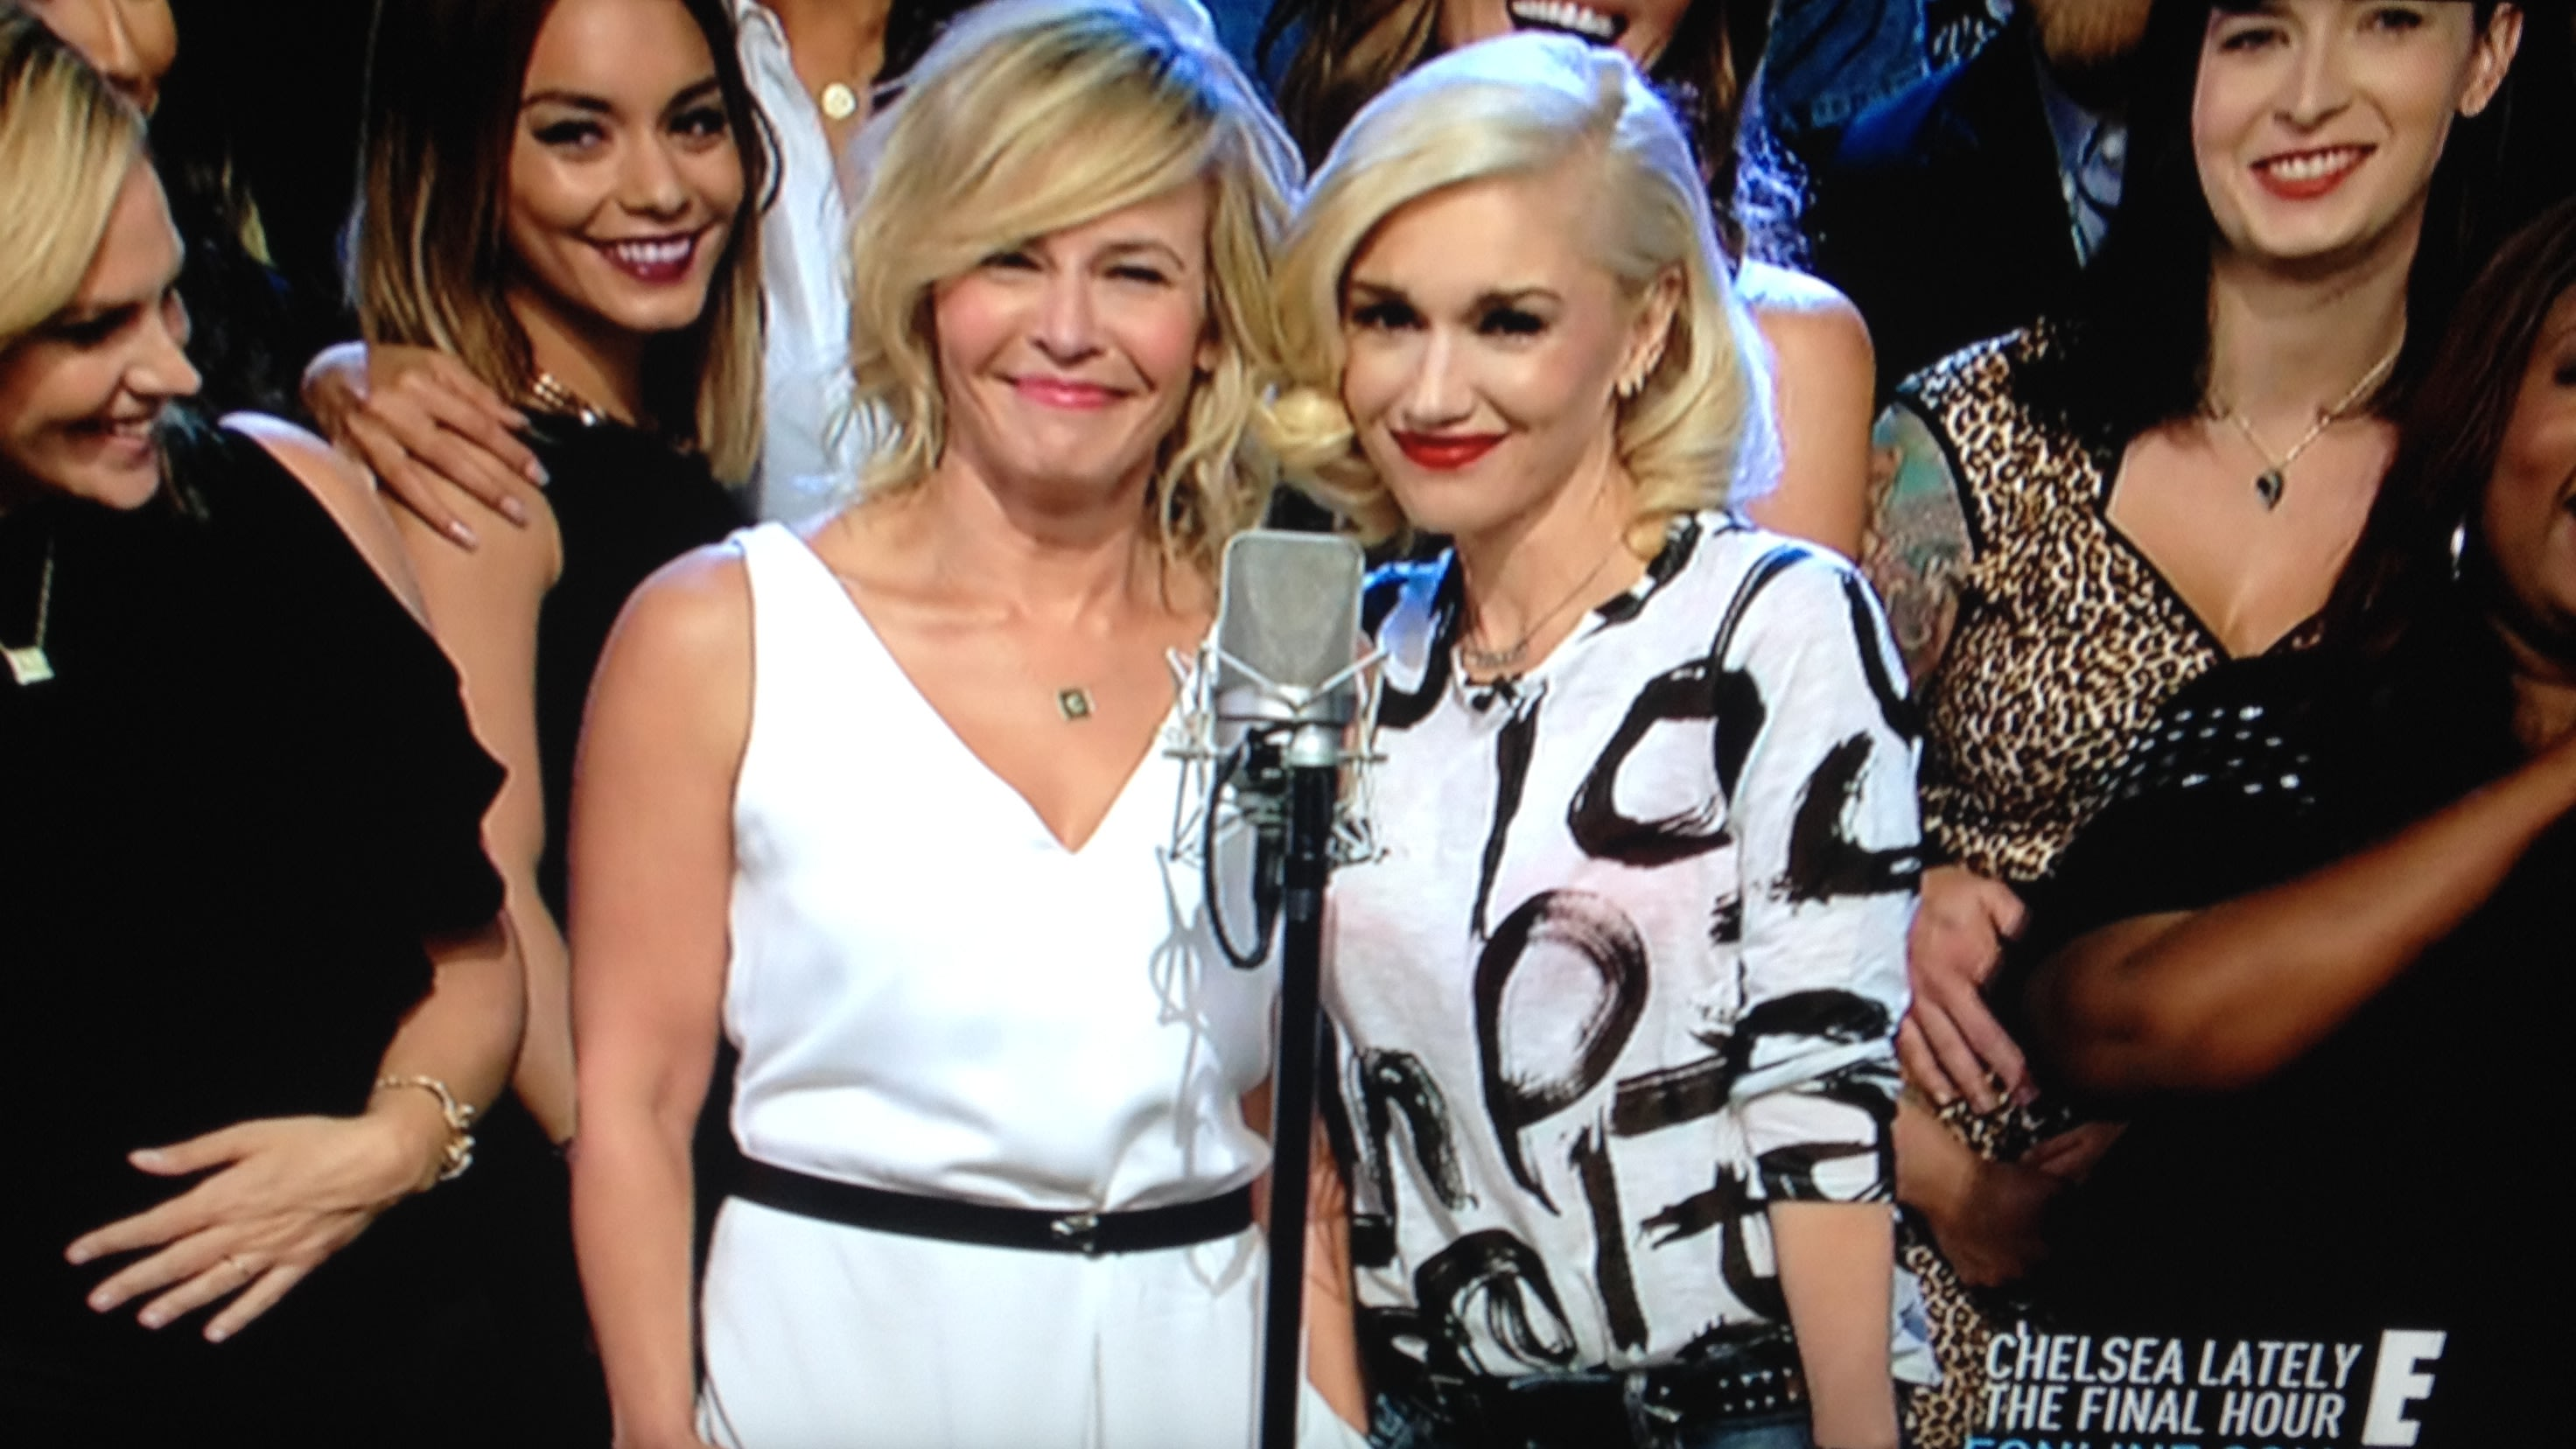 Chelsea Handler's Star-Studded Finale: Celebrities Gather to Sing for 'Lately' Host (VIDEO)